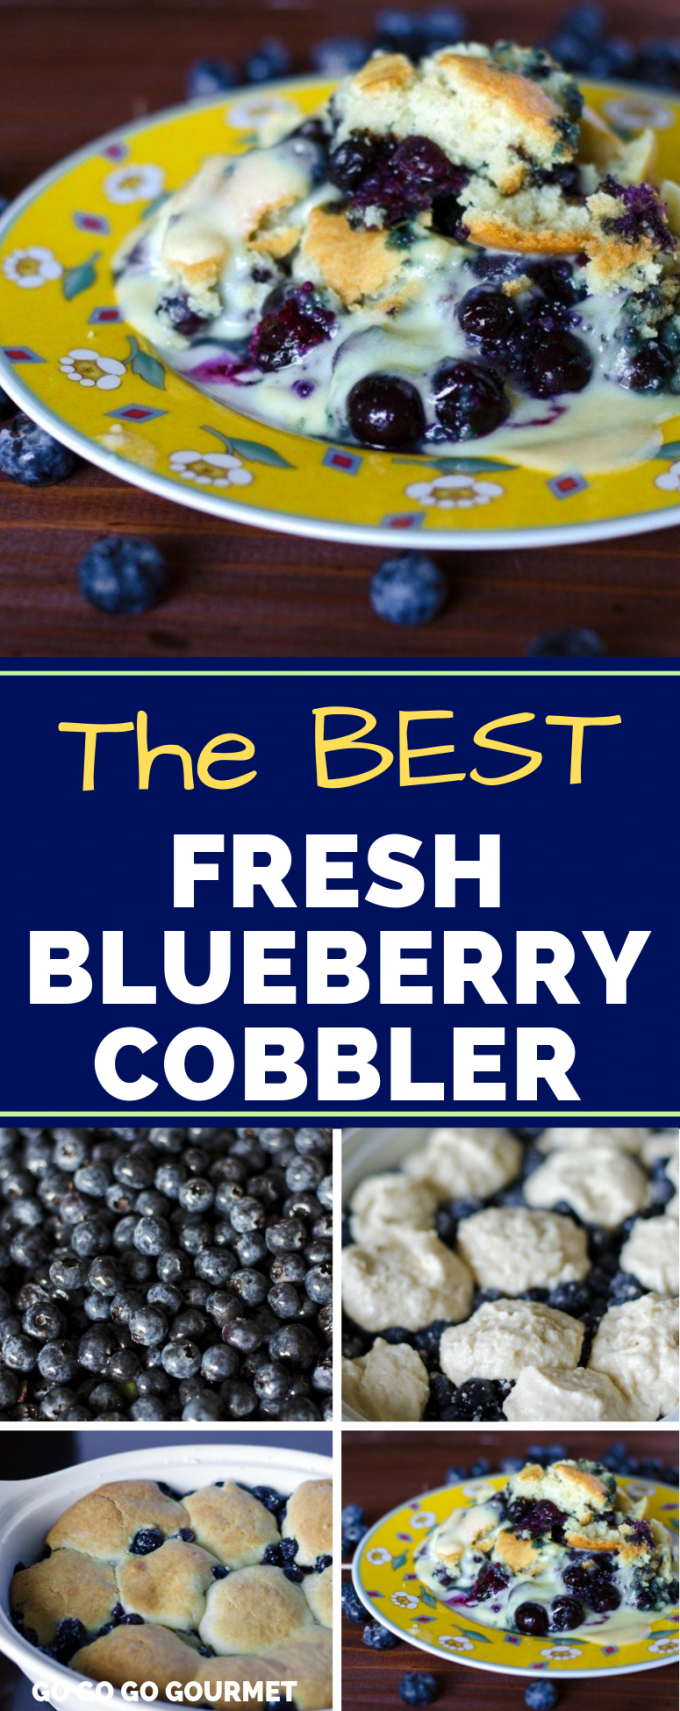 This easy Blueberry Cobbler in one of the best blueberry recipes! While it's not healthy, it's so delicious that it might even rival the Pioneer Woman! Fresh, homemade blueberry desserts don't get better than this. #gogogogourmet #blueberrycobbler #blueberryrecipes #bestblueberrycobbler via @gogogogourmet